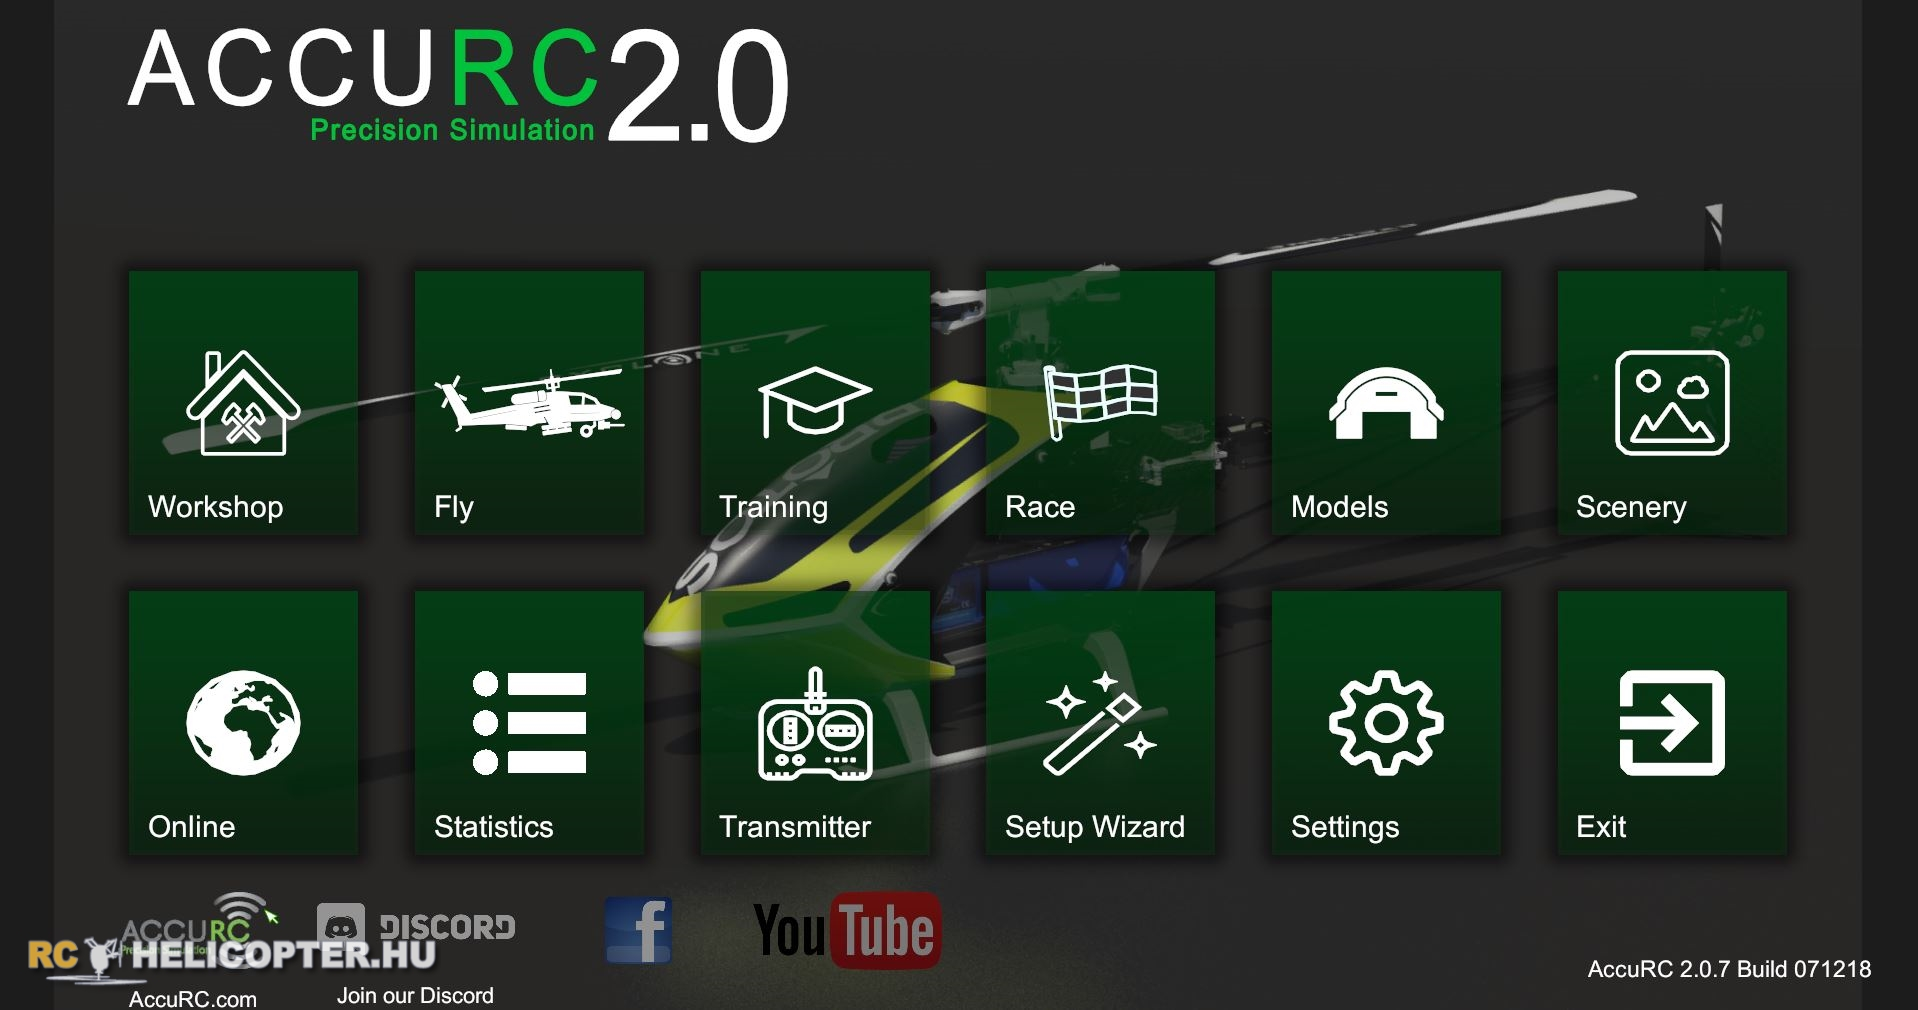 AccuRC main menu